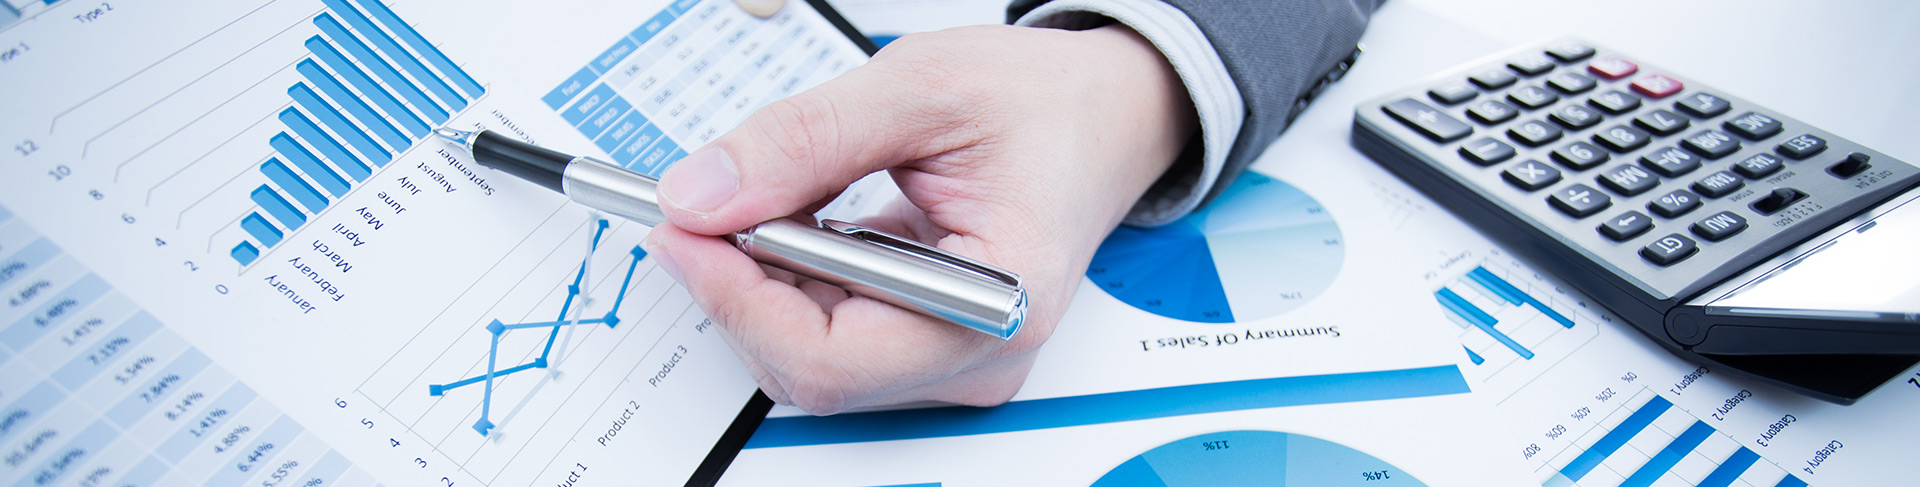 accounting services near me